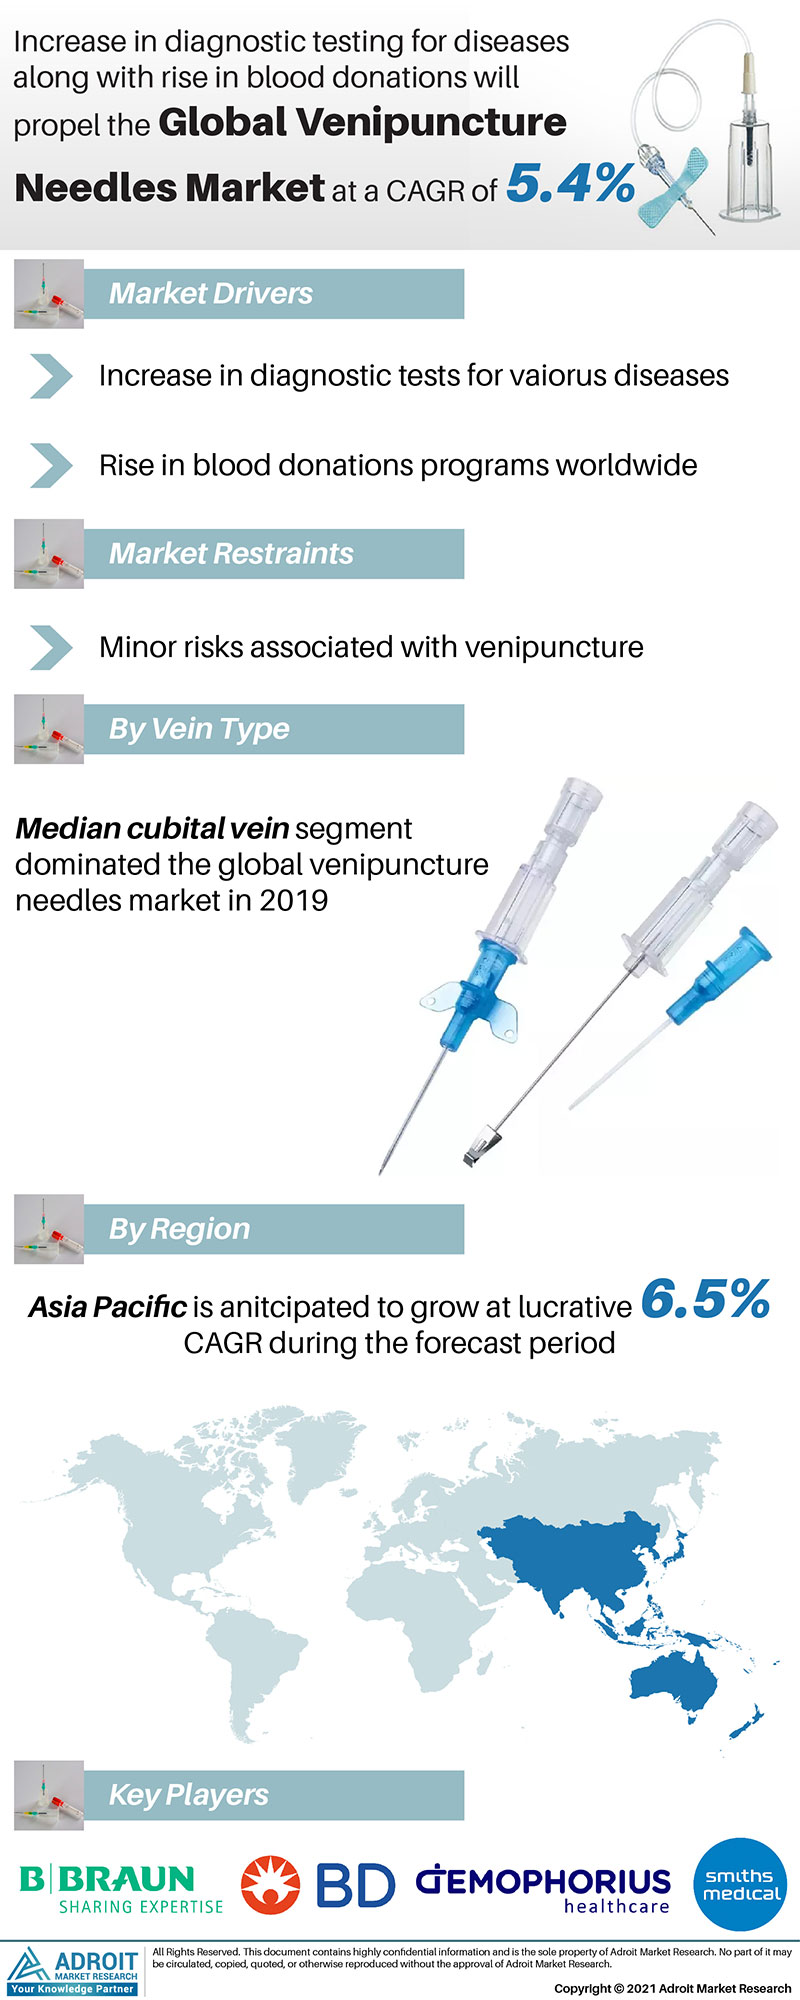 Venipuncture Needles Market Size 2017 By Application, Product, Region and Forecast 2019 to 2025